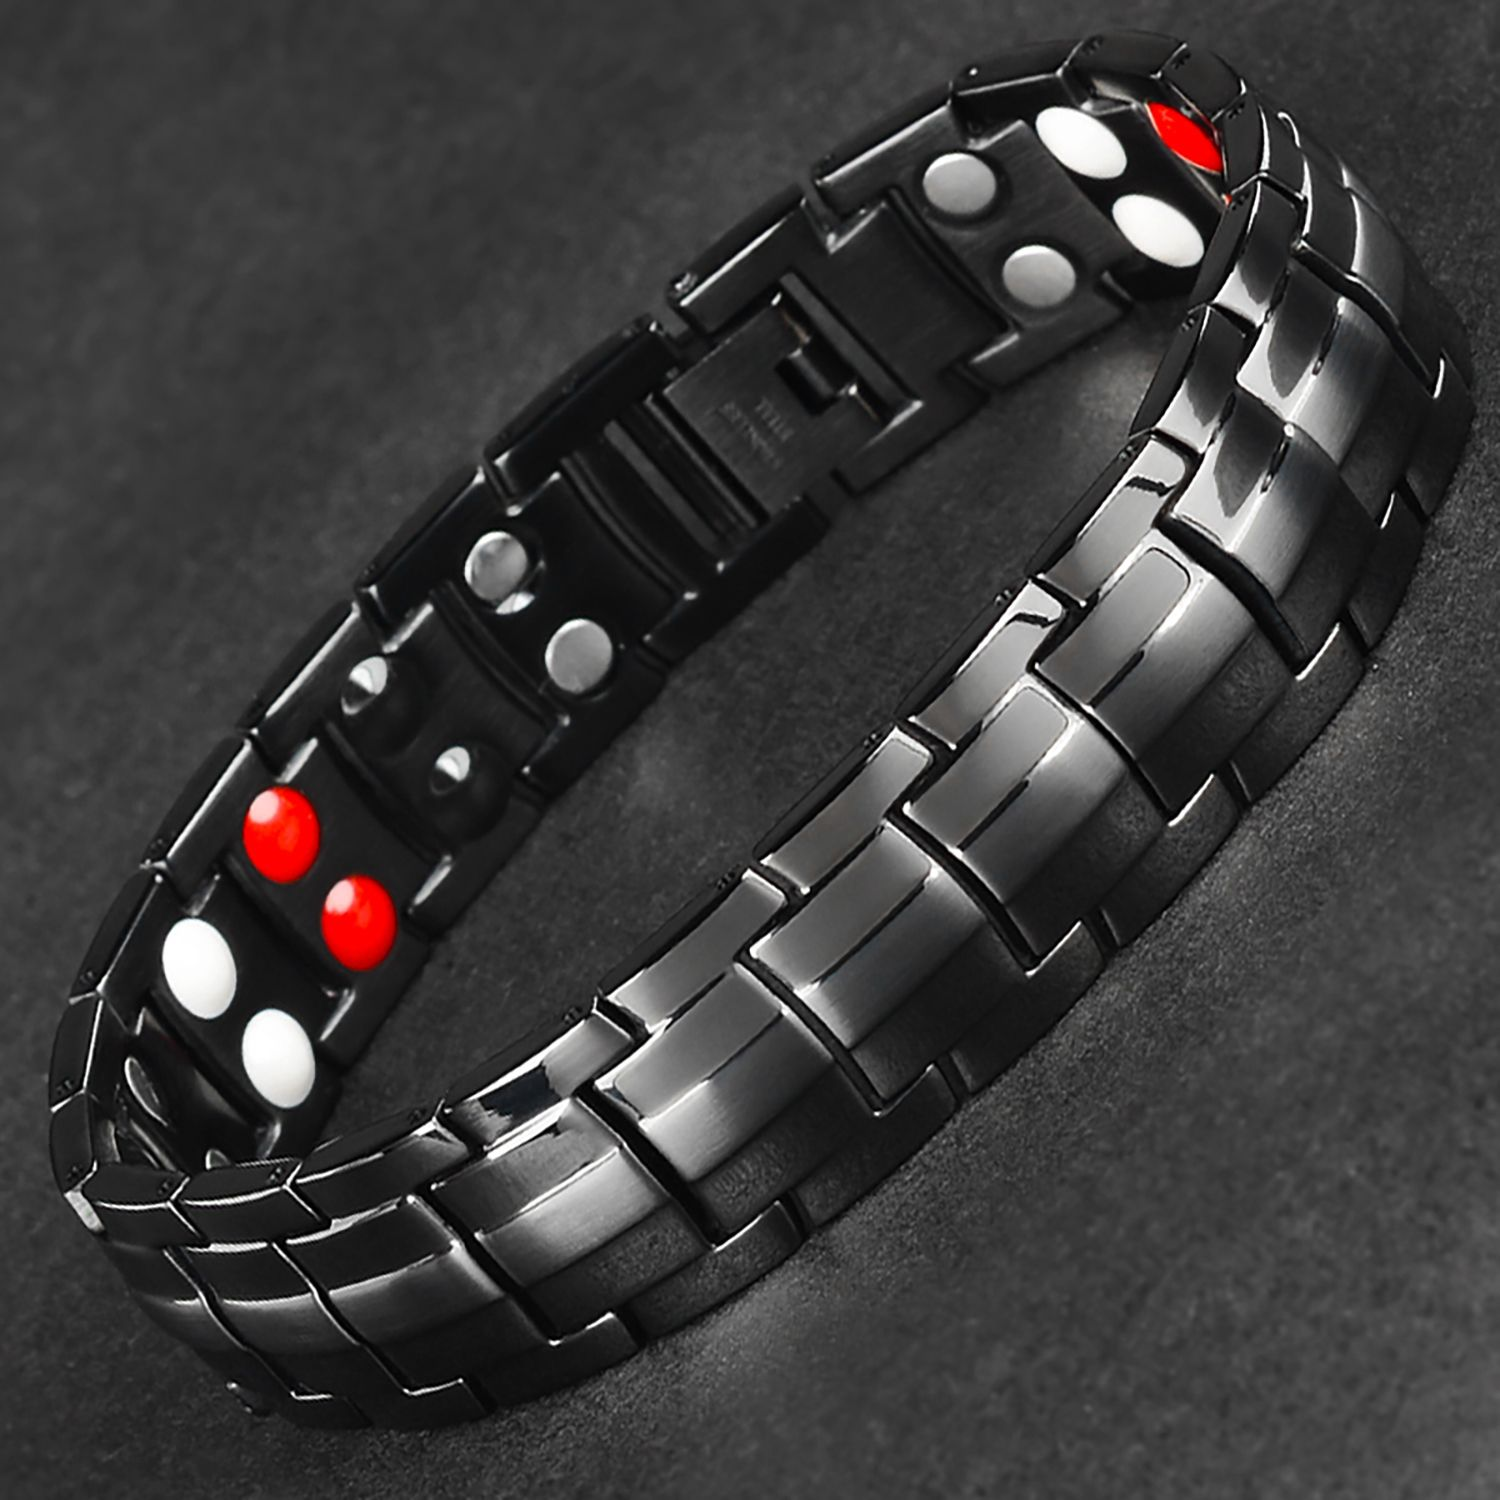 NEW ARTHRITIS PAIN RELIEF TITATIUM /& GERMANIUM 4 in 1 ELEMENTS MAGNETIC BRACELET